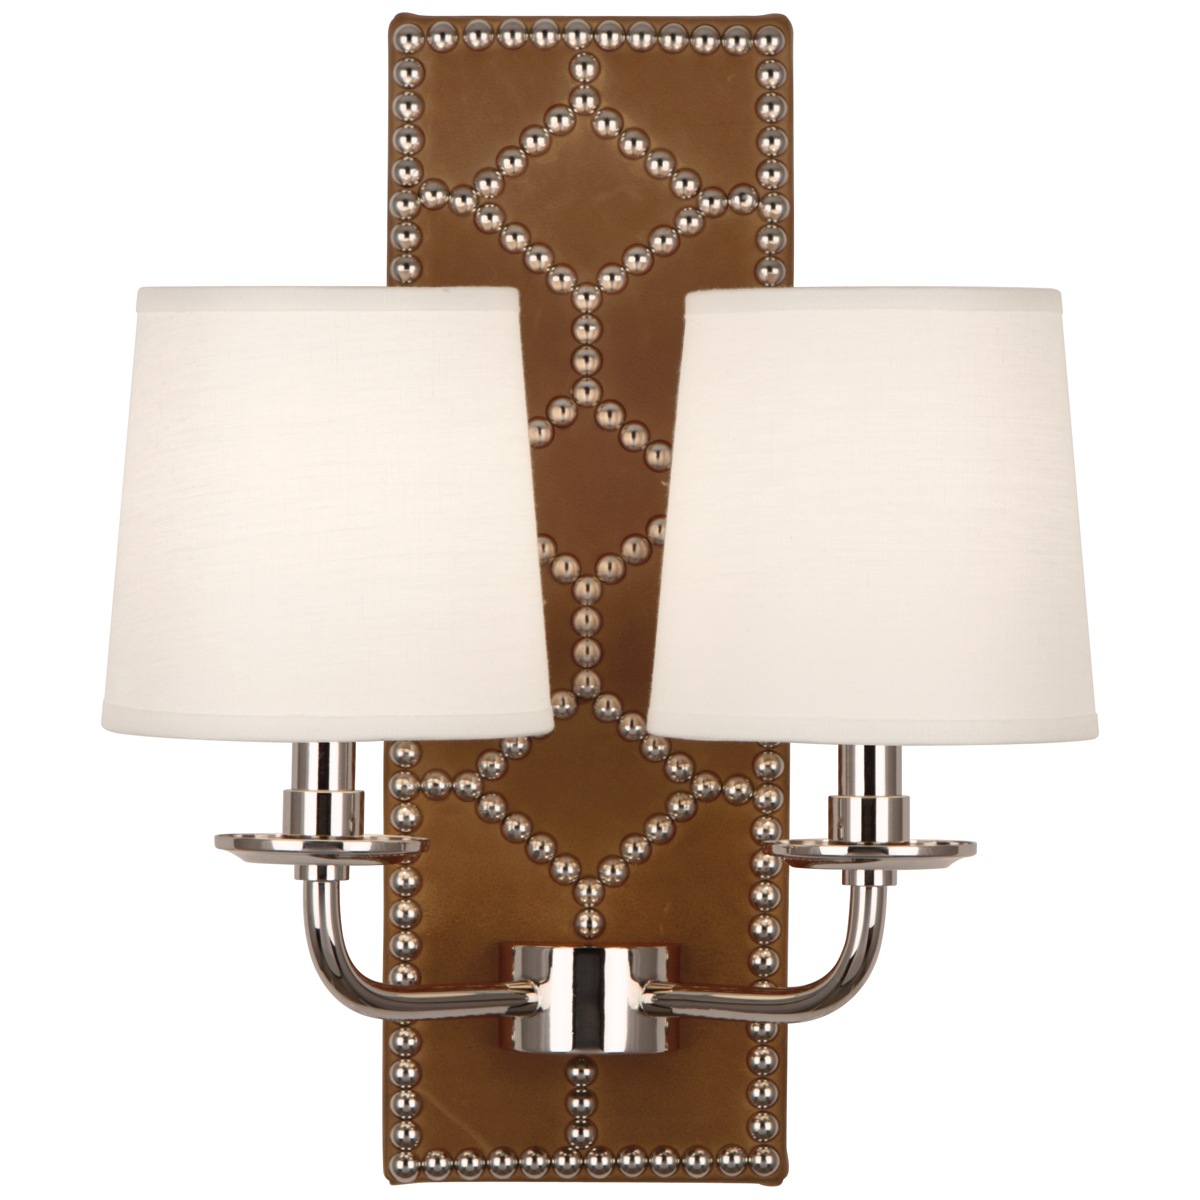 Williamsburg Lightfoot Wall Sconce Style #S1030